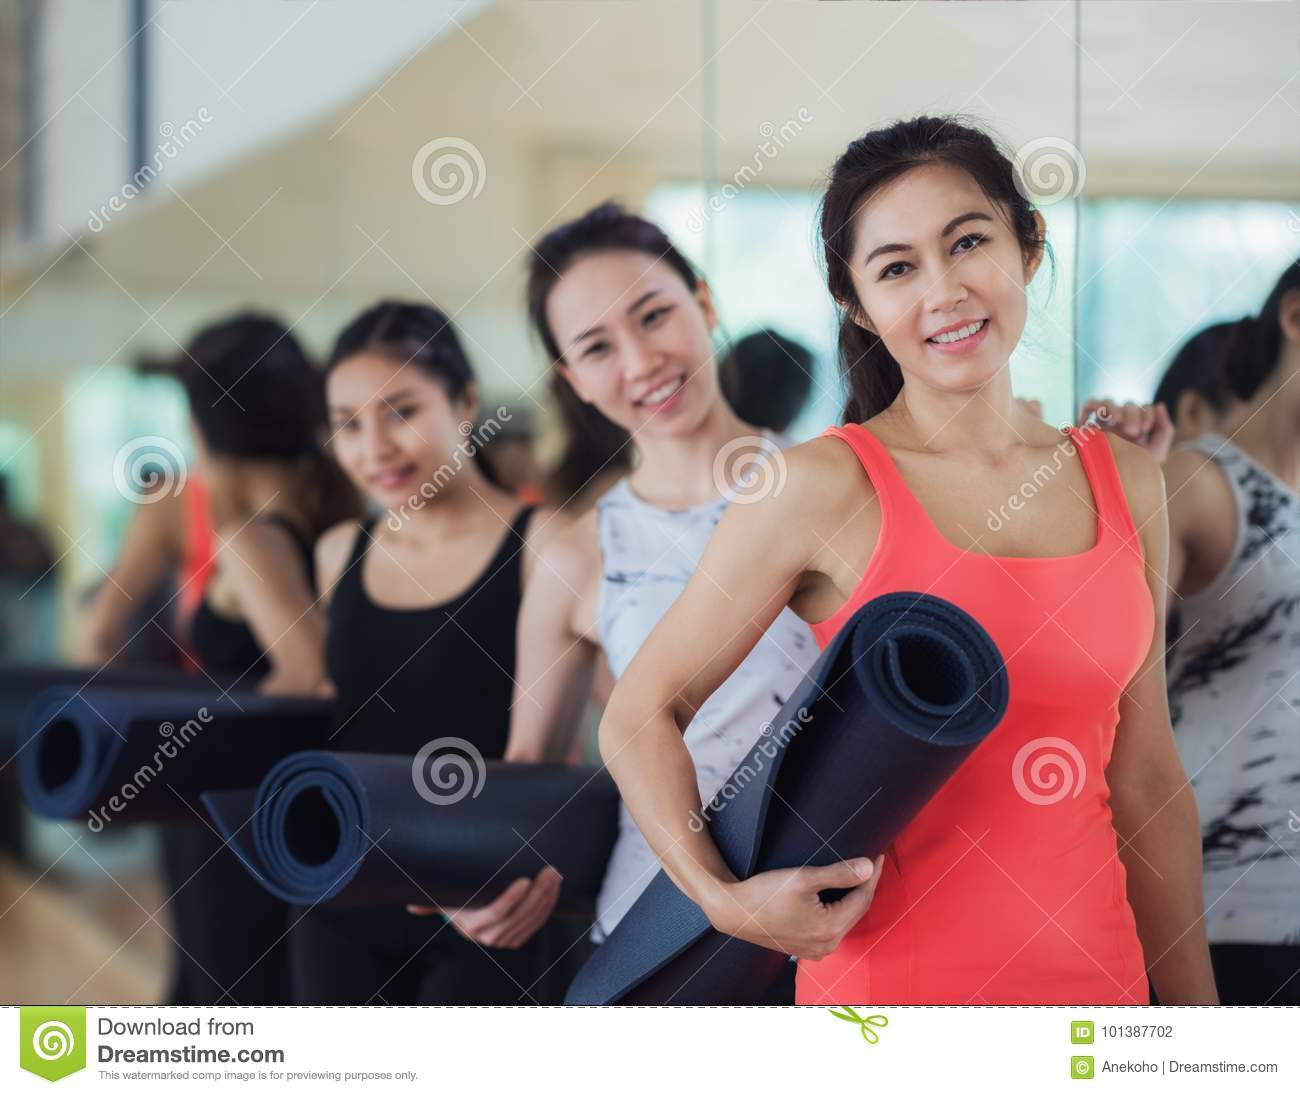 Yoga teacher and her student carry a mat and waiting in fitness